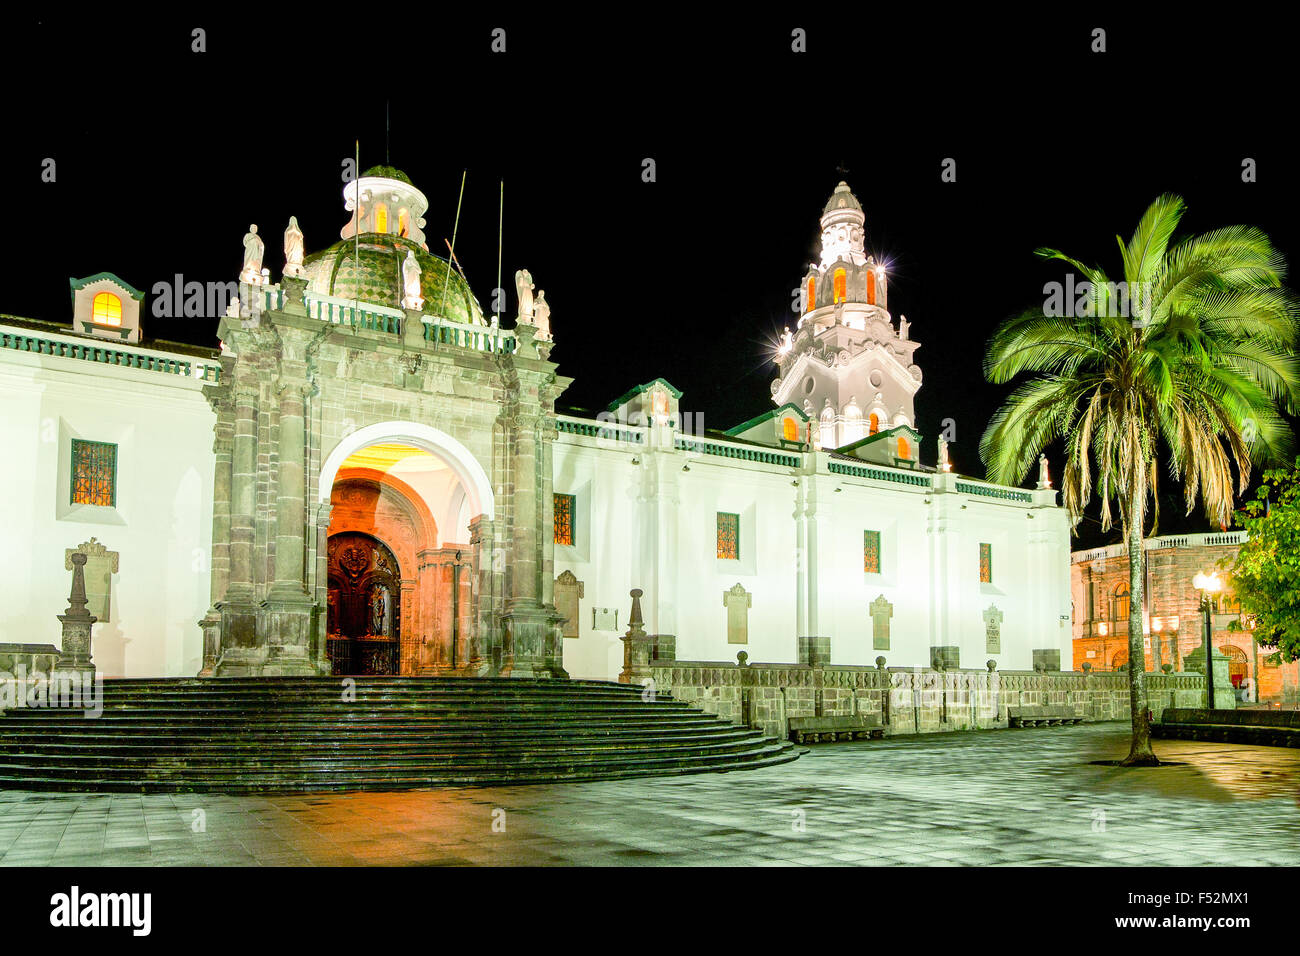 Cathedral On Main Square In Quito Ecuador - Stock Image